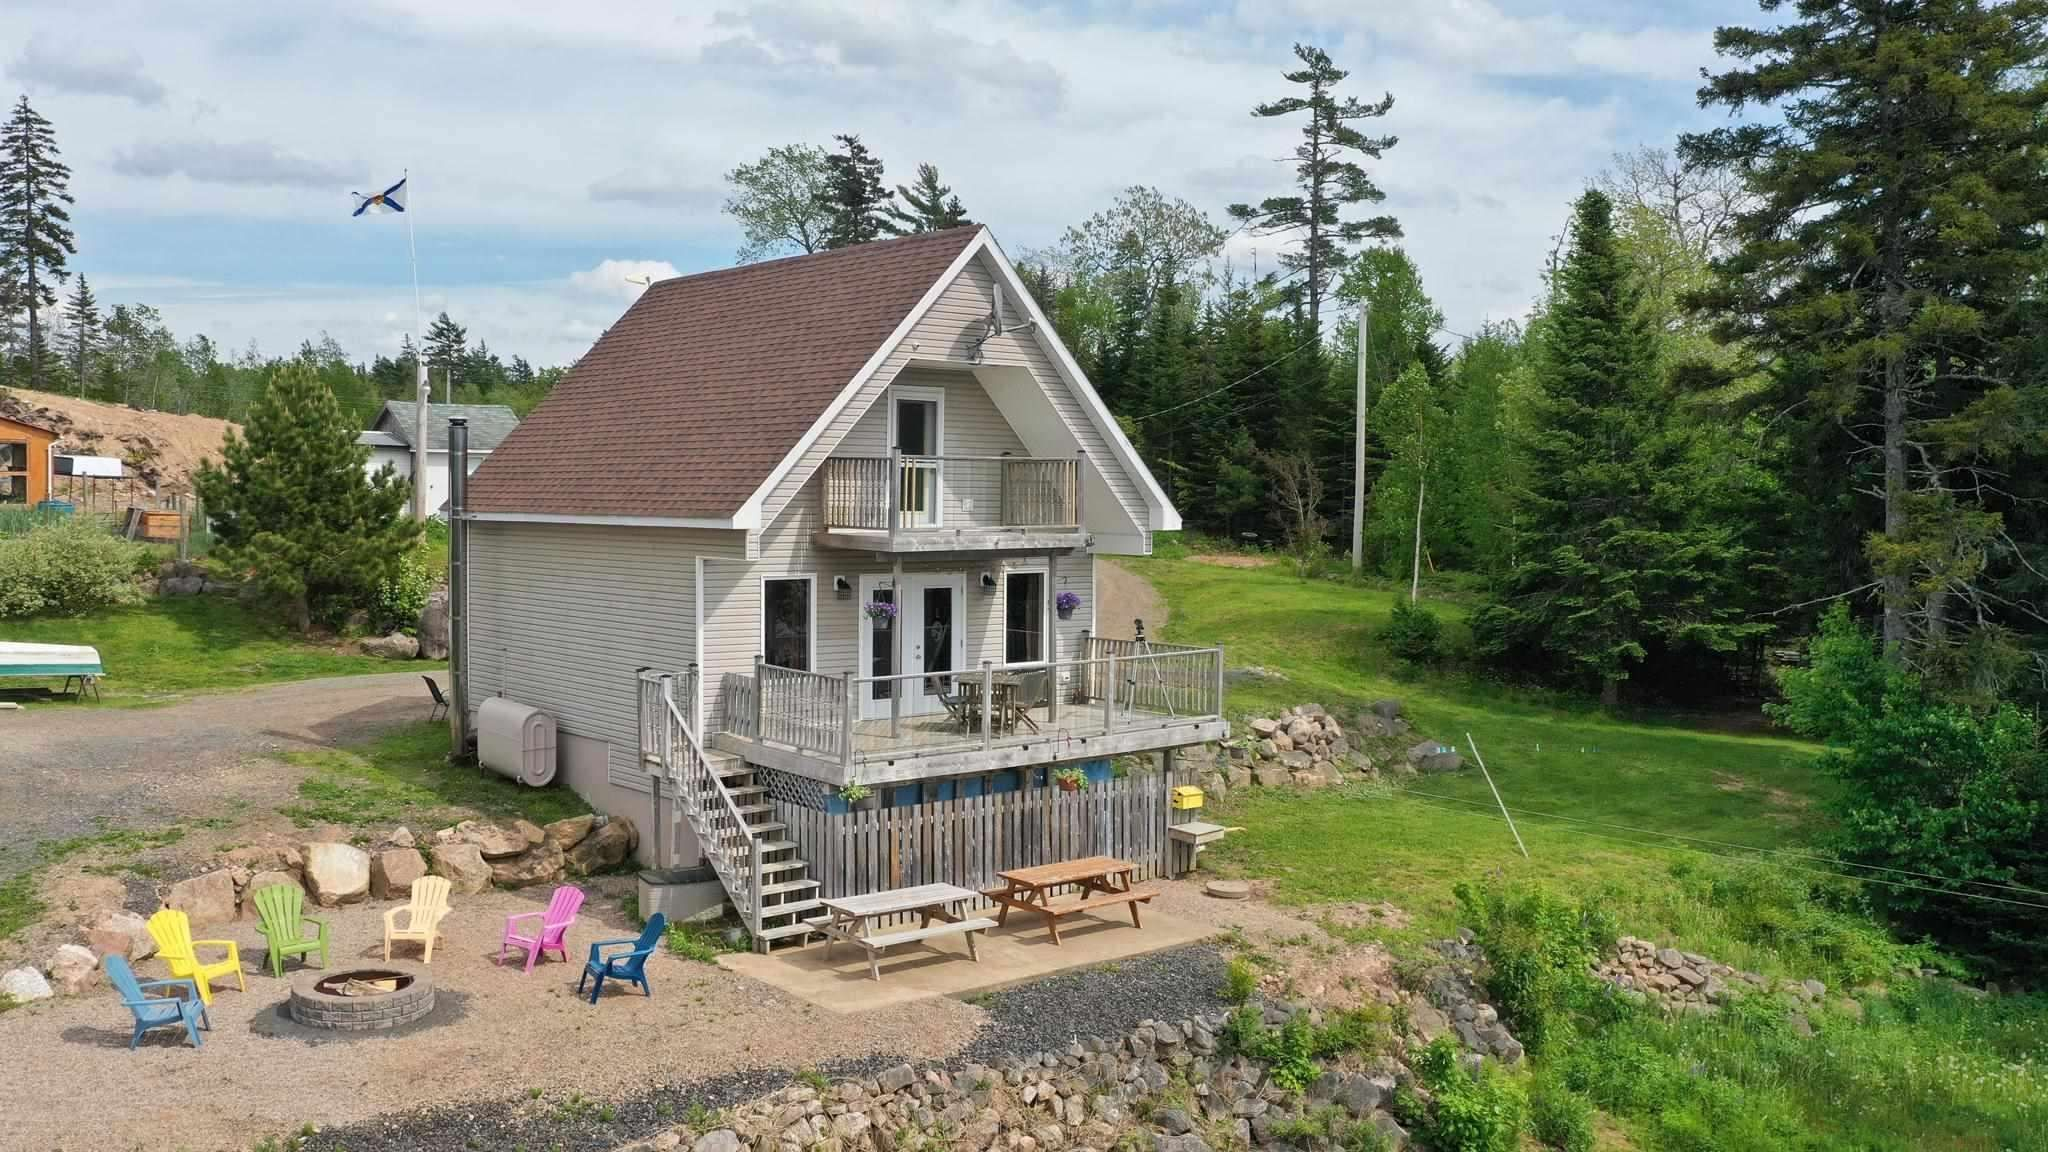 Main Photo: 415 Loon Lake Drive in Loon Lake: 404-Kings County Residential for sale (Annapolis Valley)  : MLS®# 202114160